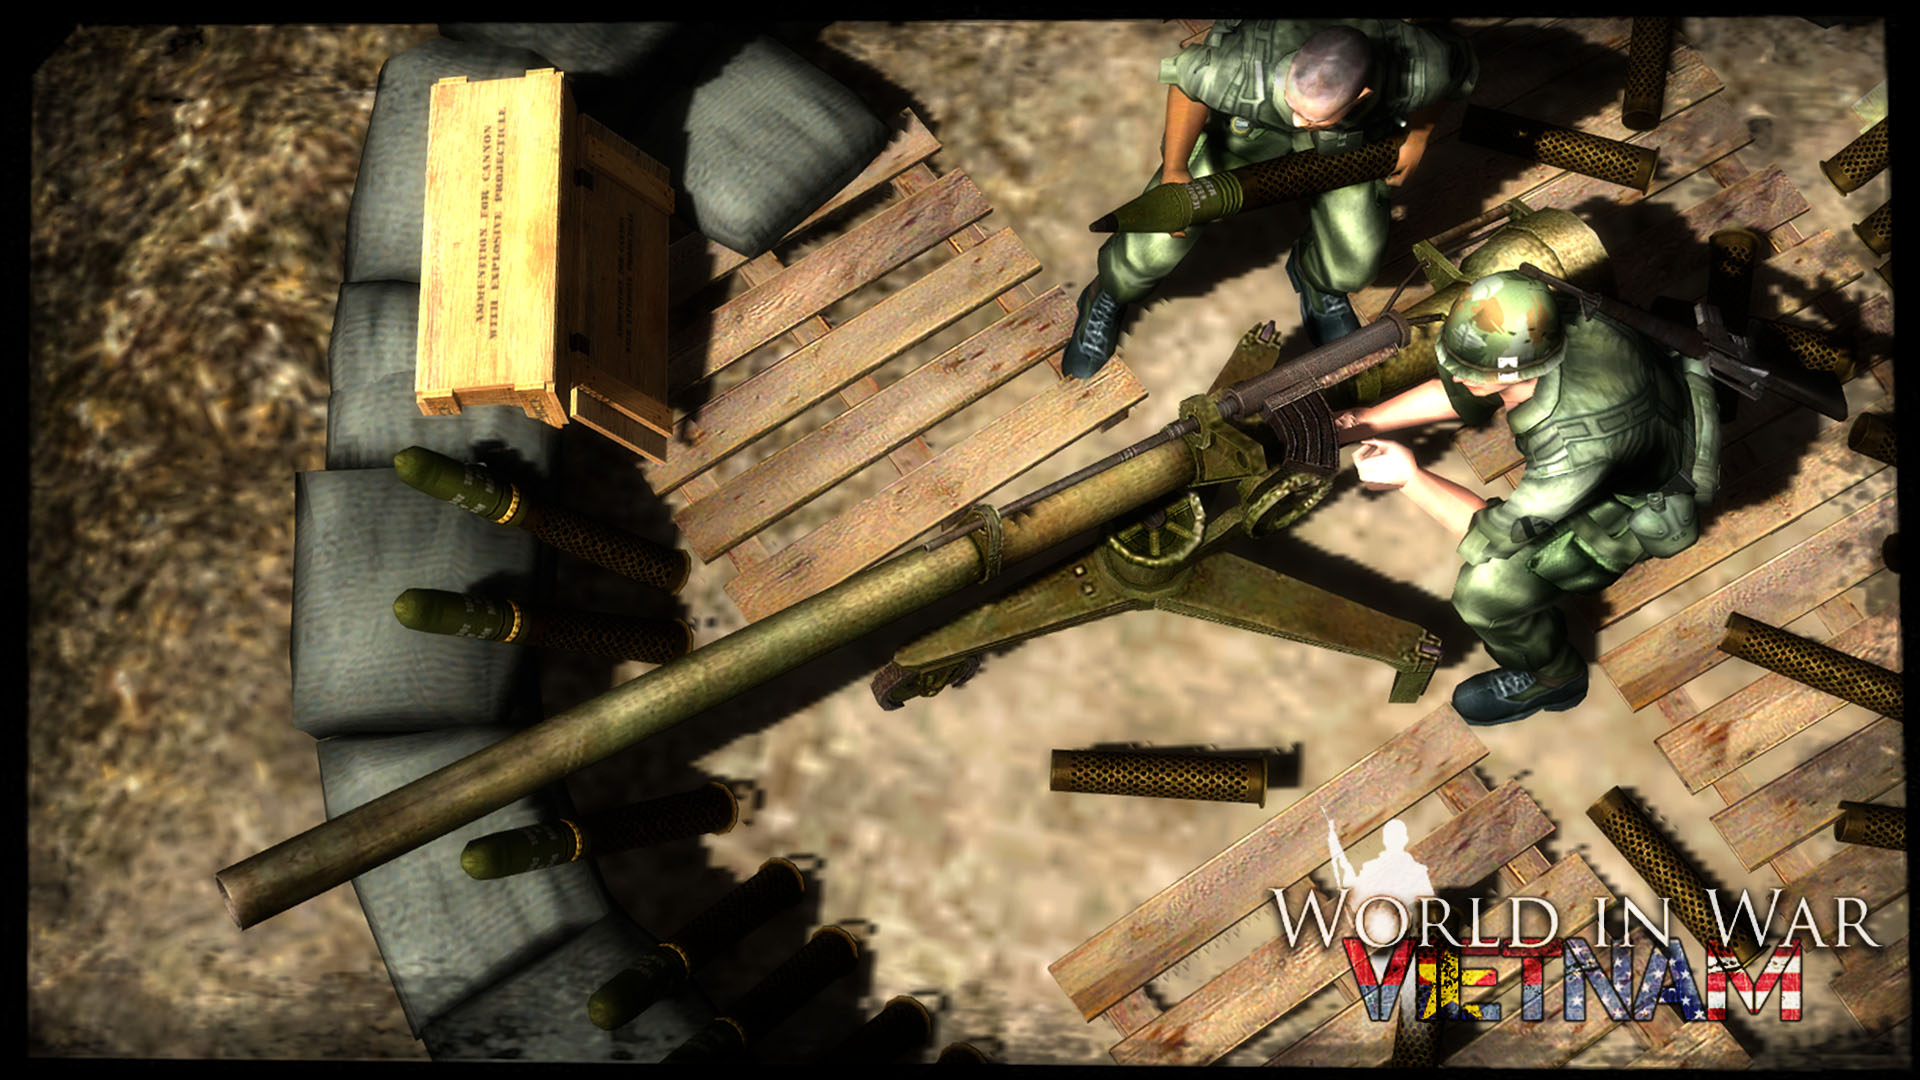 M40 Recoilless Rifle Image World In War Vietnam Mod For